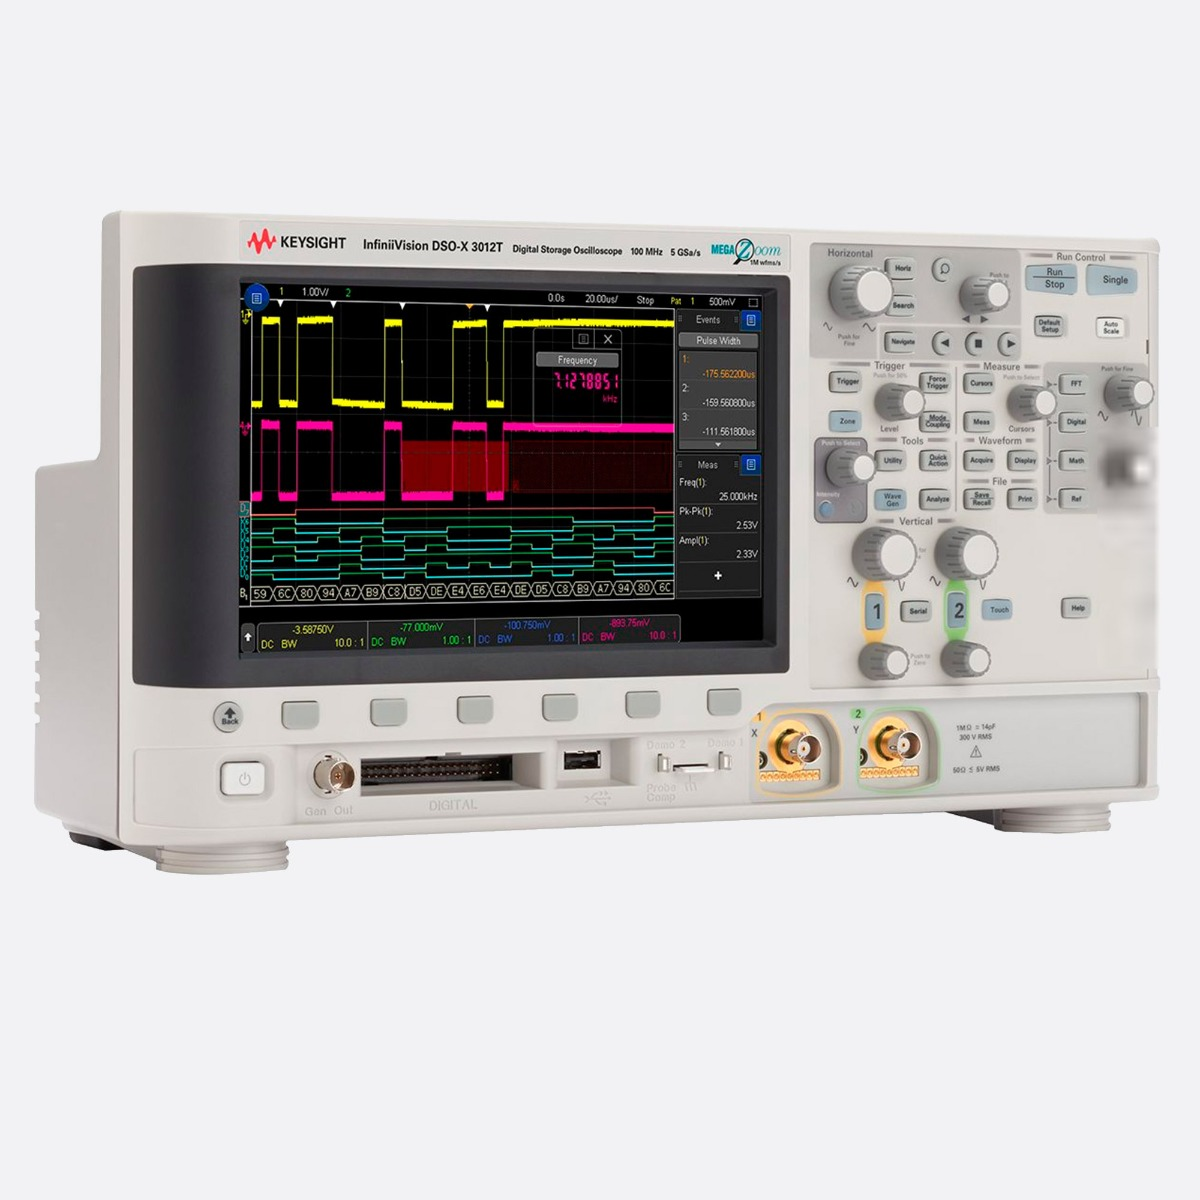 Keysight_DSOX3012T_Left-Front_Ccontrols